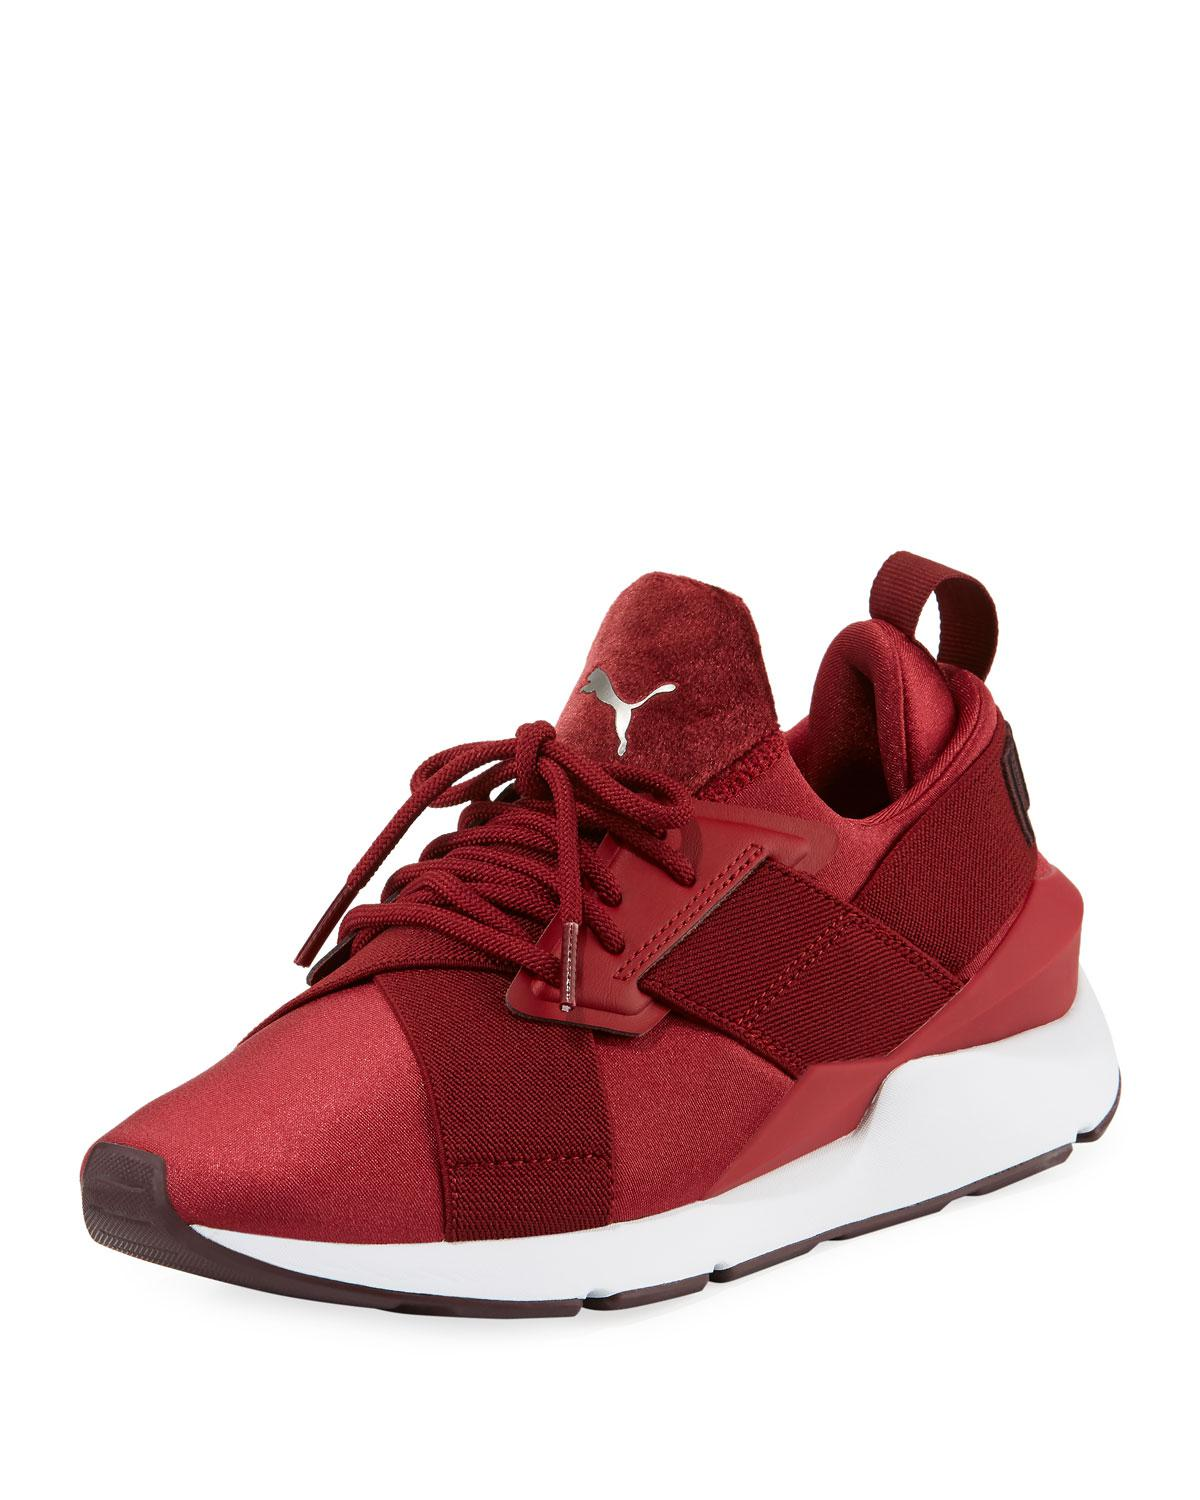 Muse Satin Ii Lace-up Sneakers